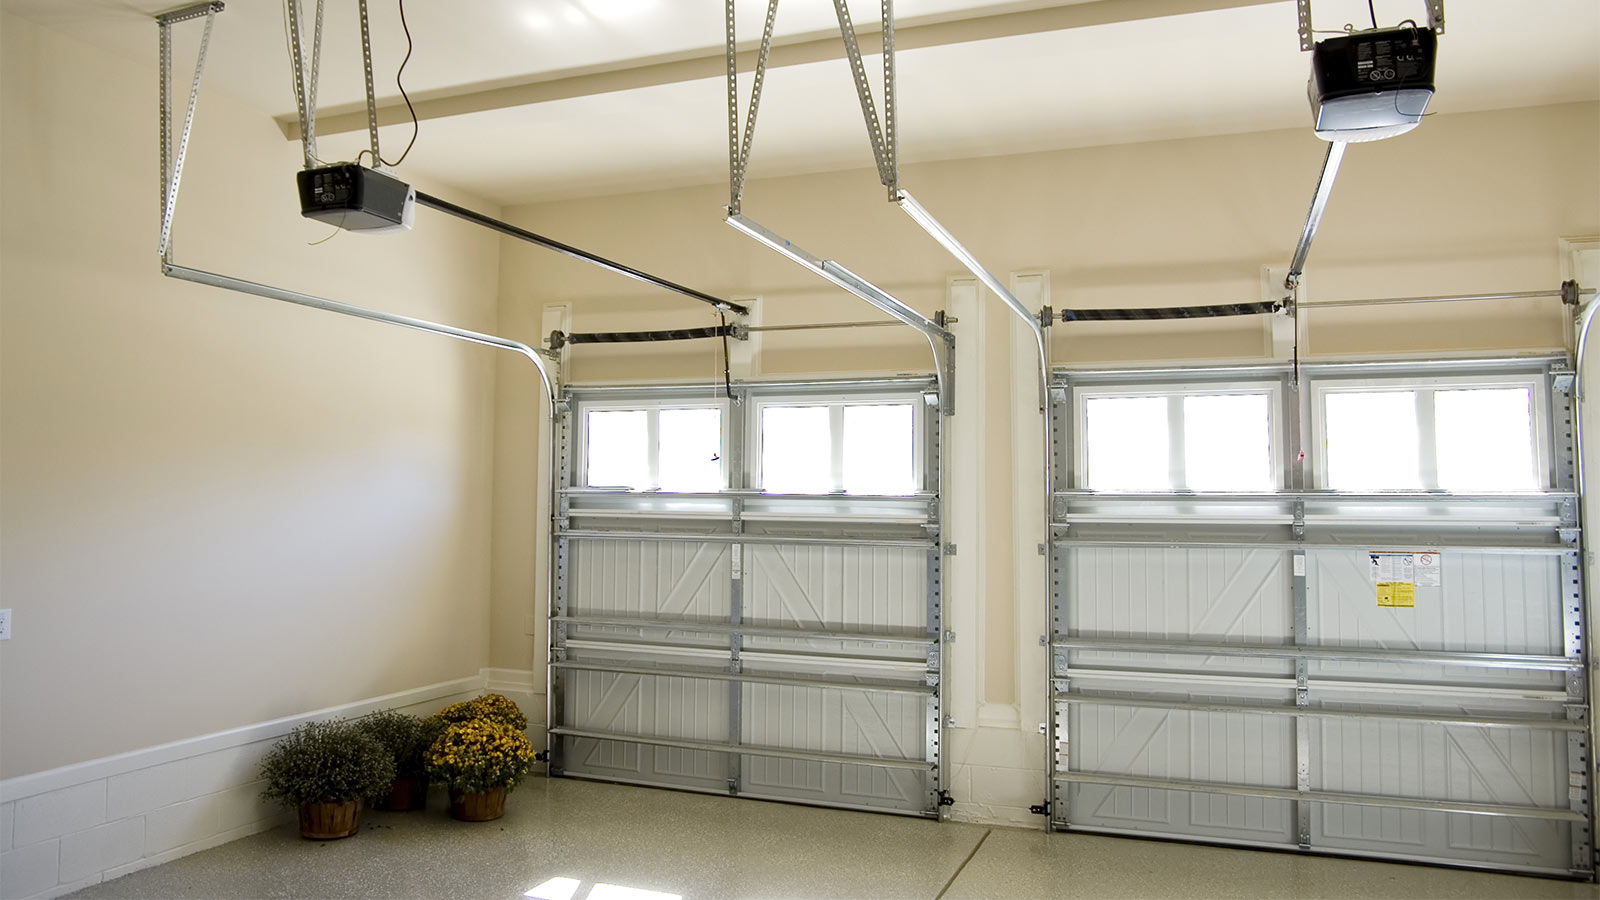 Sectional Garage Doors from Electric Roller Garage Doors Woking suppliers.